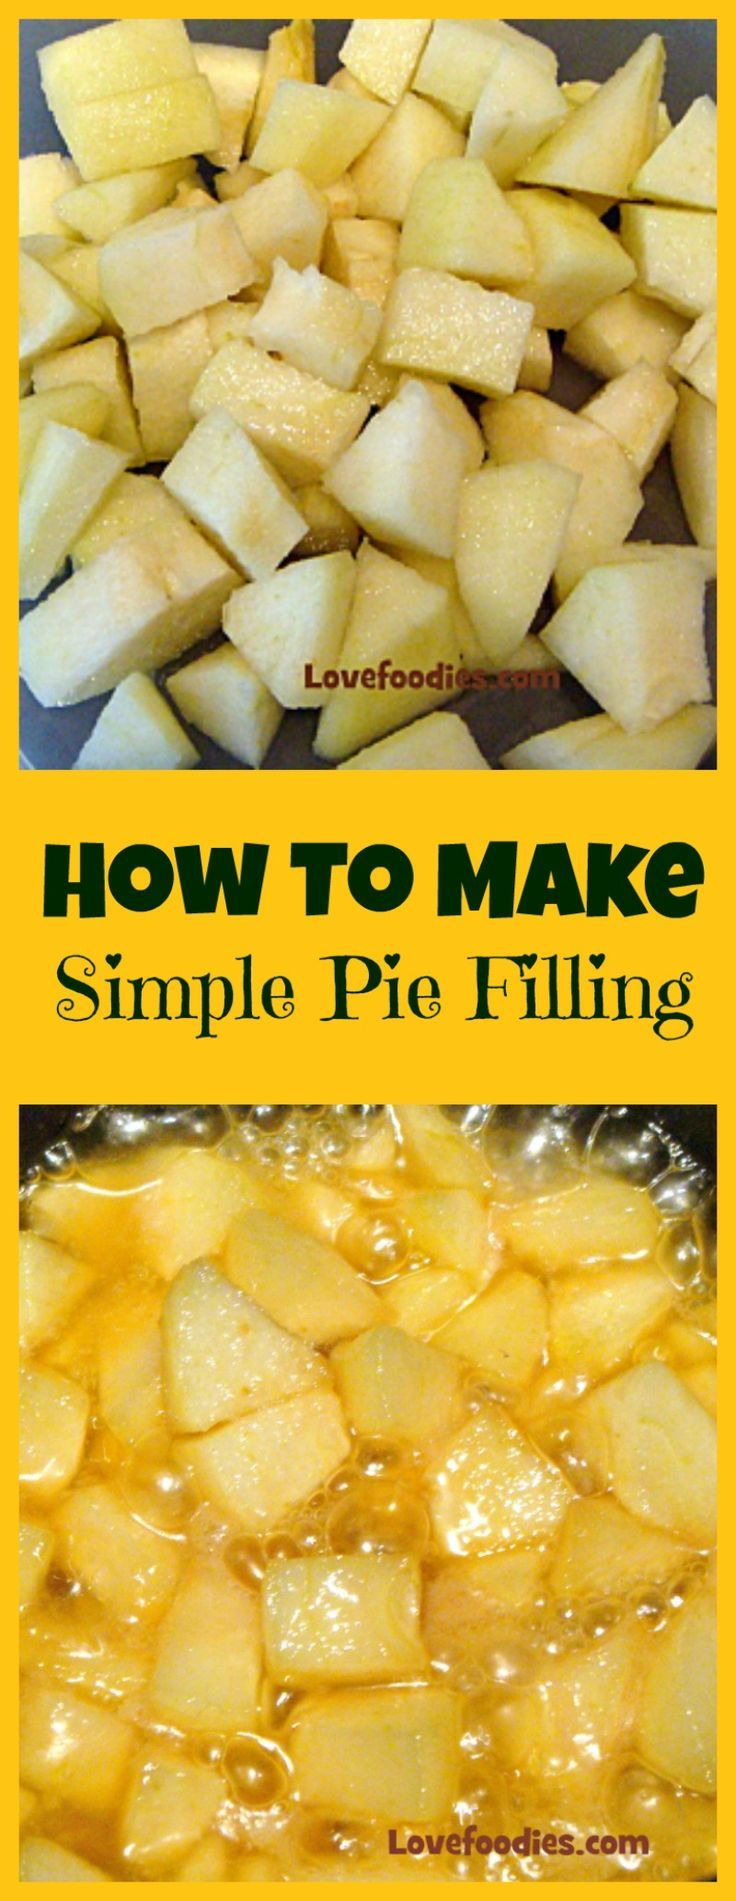 How To Make A Simple Fruit Pie Filling, 2 recipes, one for regular filling and one for a CARAMEL filling. Both very delicious for sure!